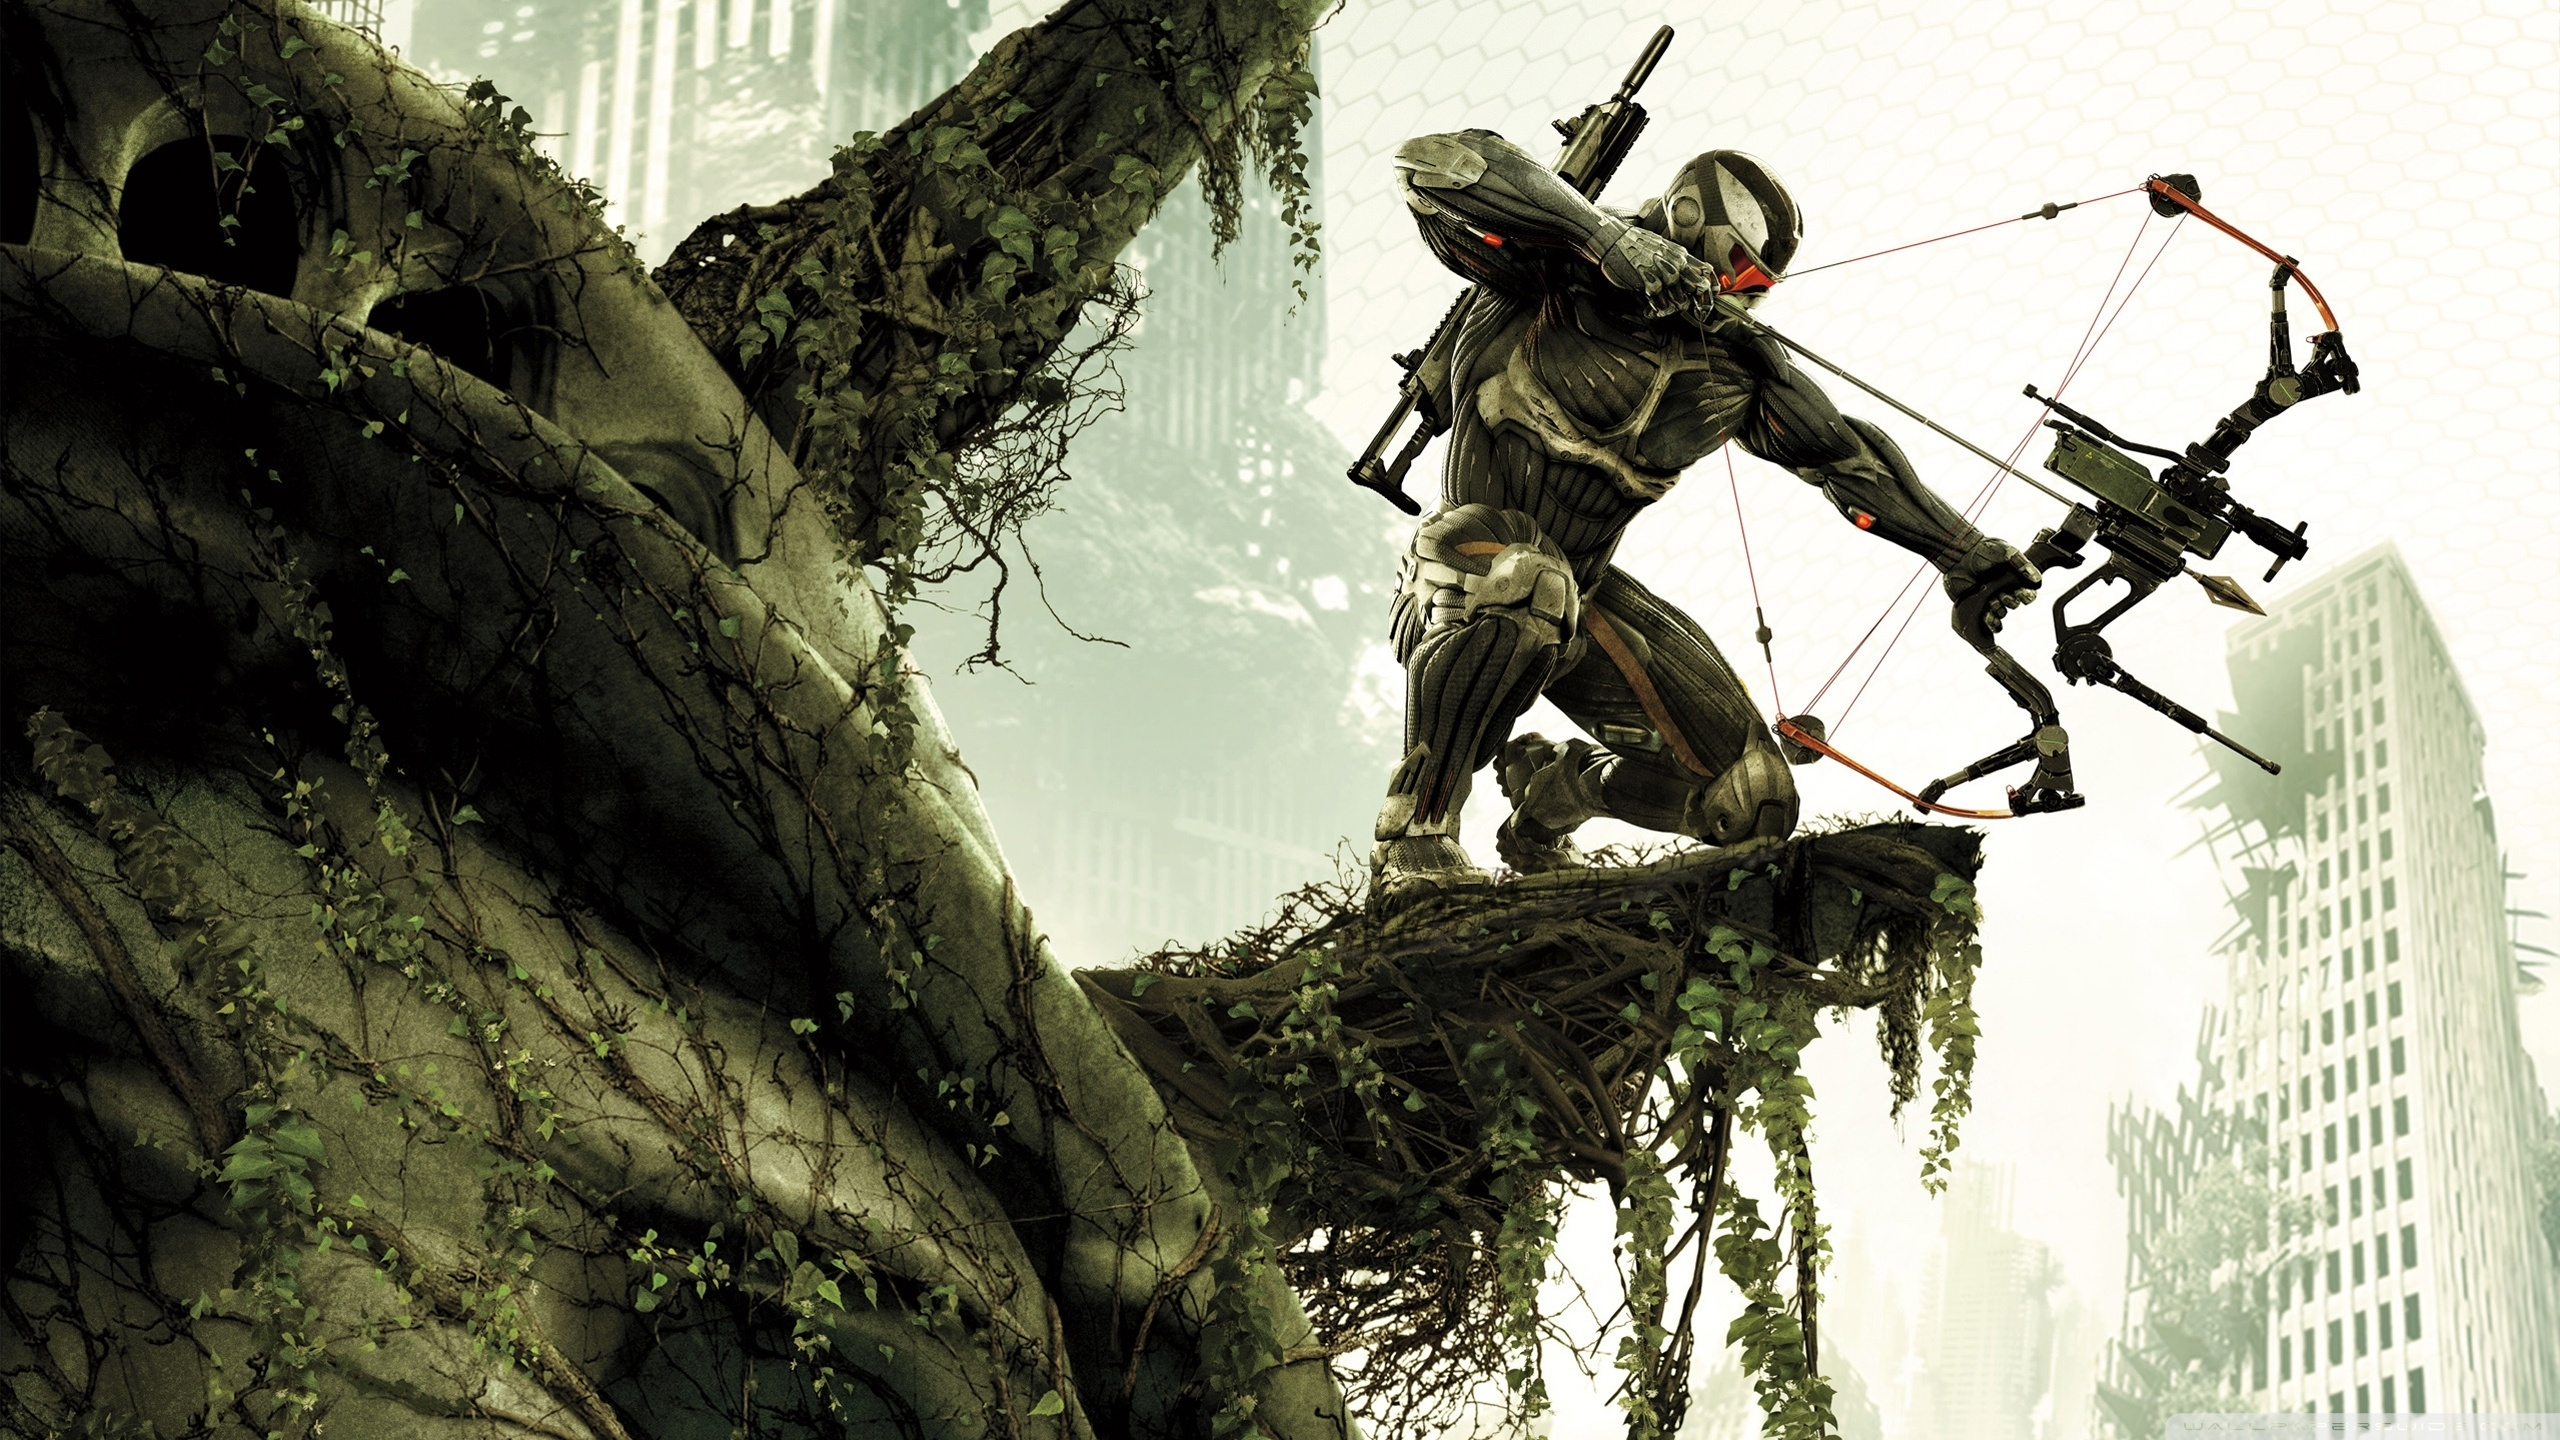 crysis 3 (2013) video game ❤ 4k hd desktop wallpaper for 4k ultra